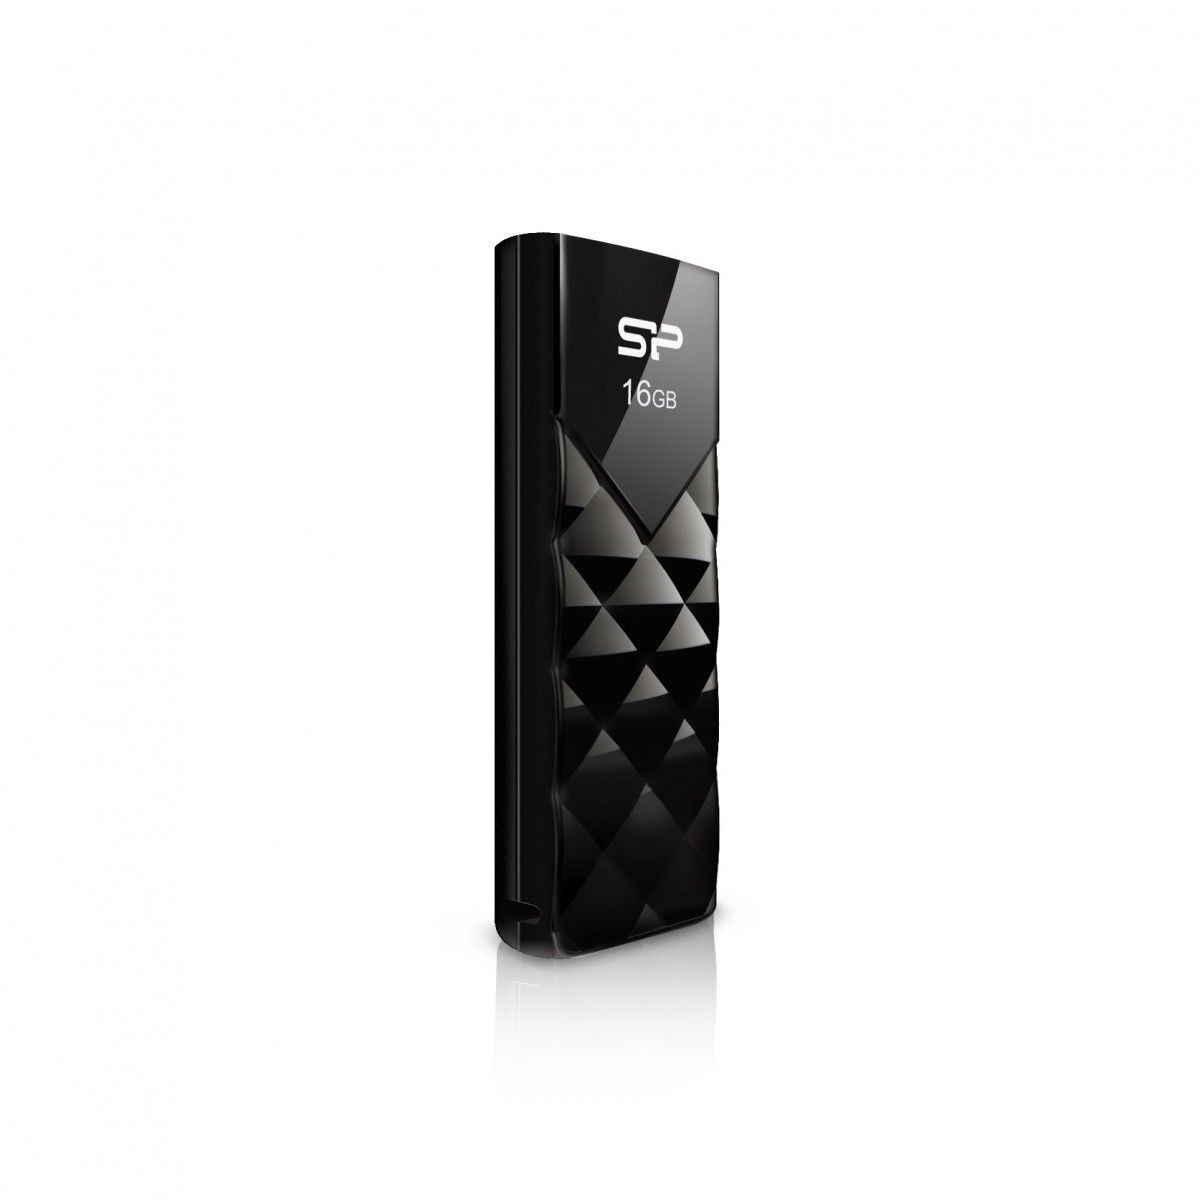 Silicon-Power ULTIMA U03 16GB USB 2.0 LUX/CZARNY